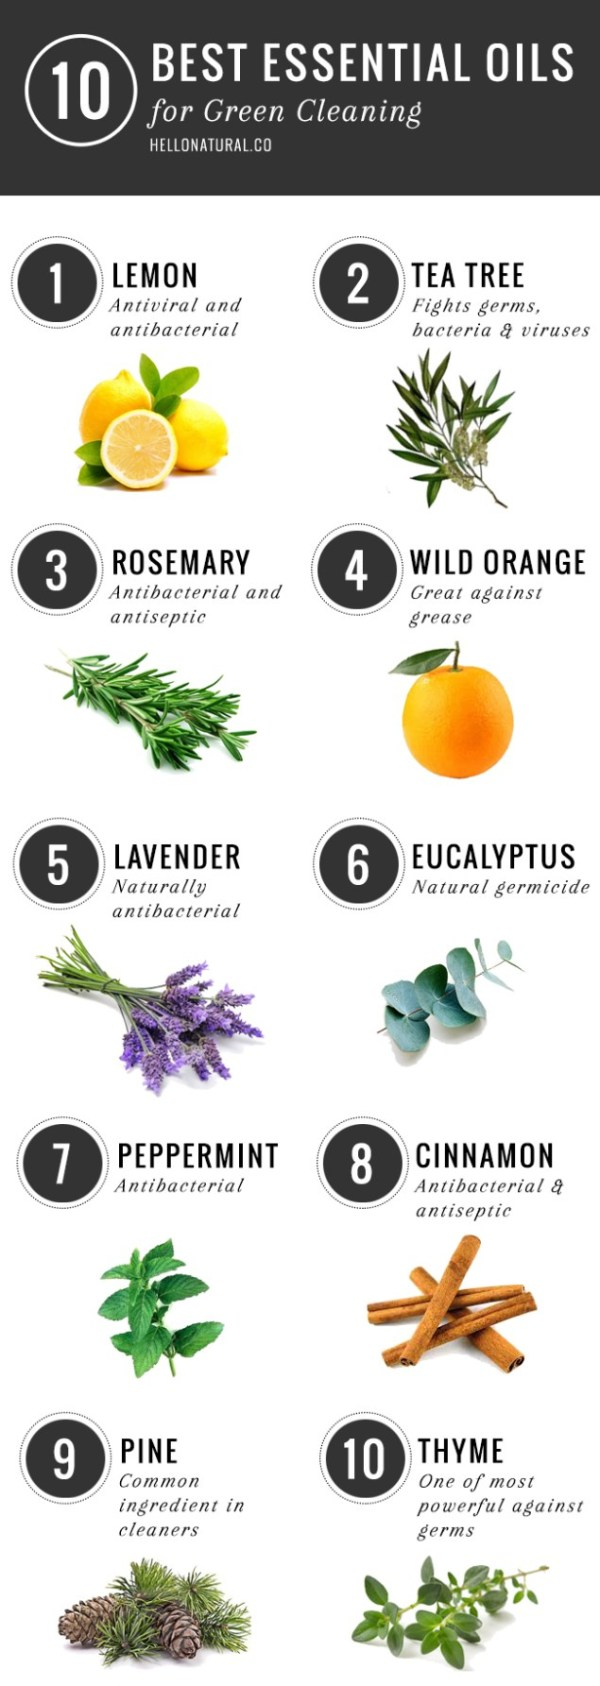 10-best-essential-oils-feb.jpg